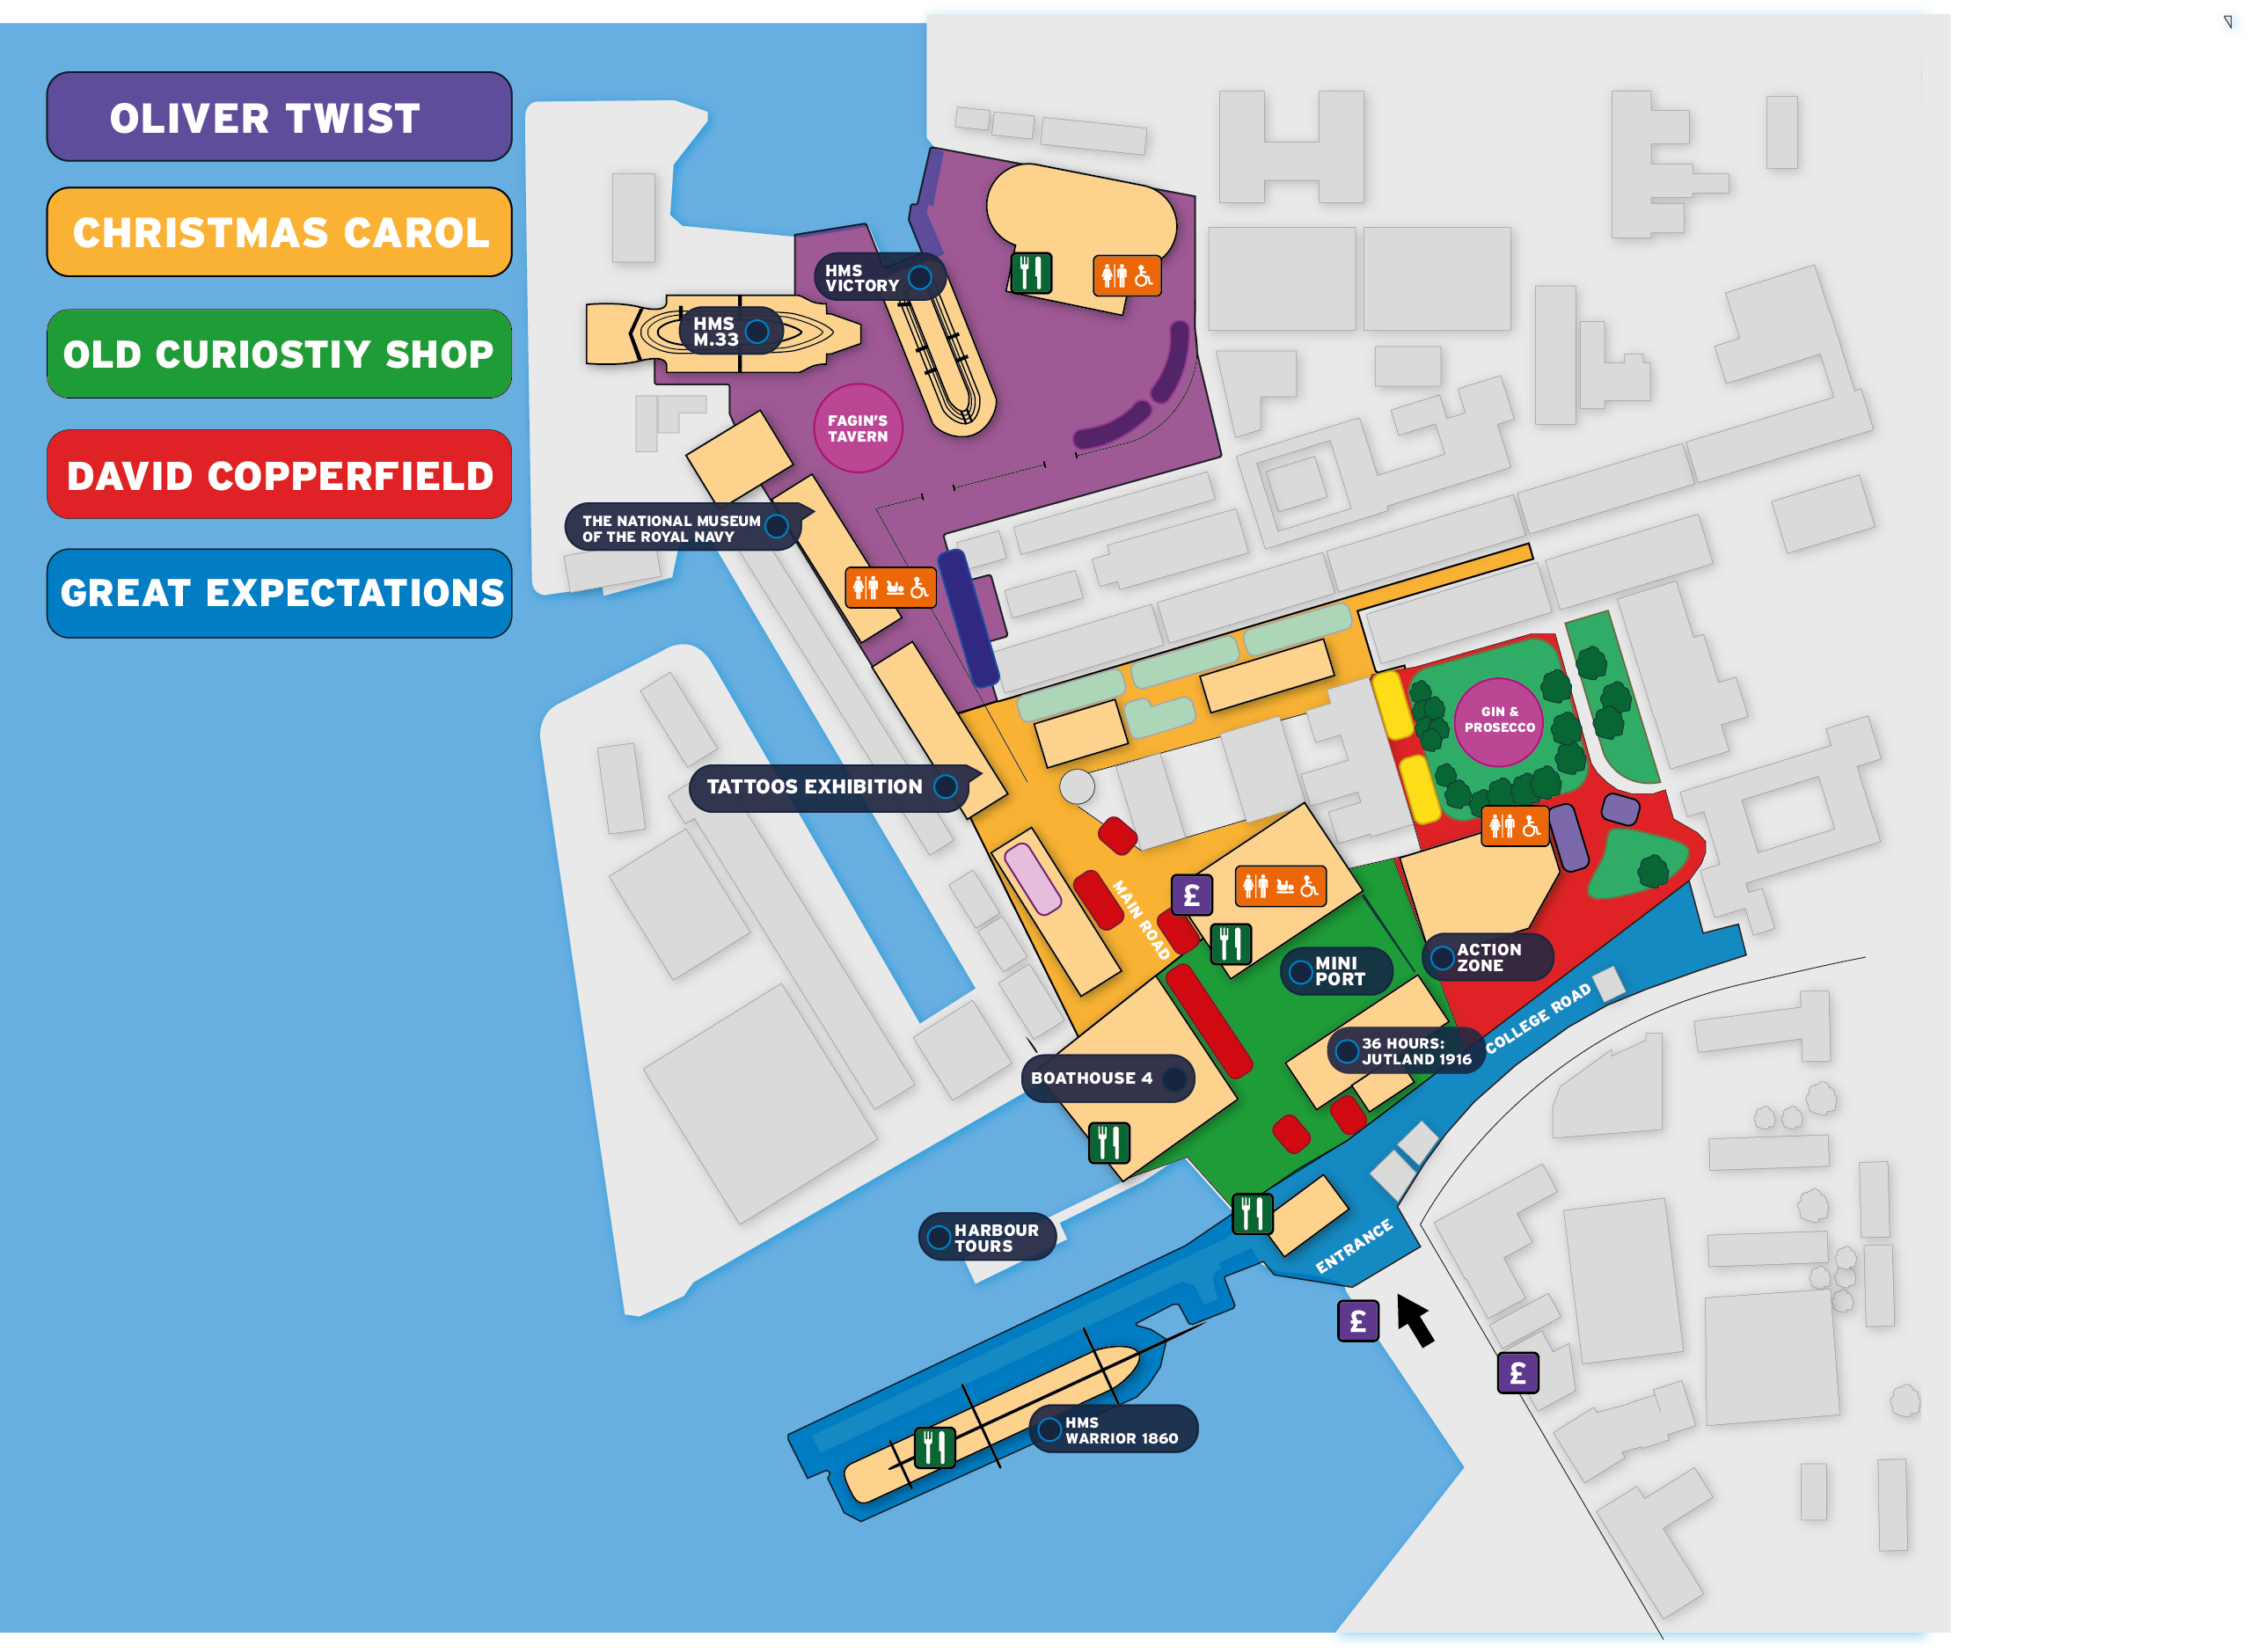 The map for Dickens Christmas Festival 2018